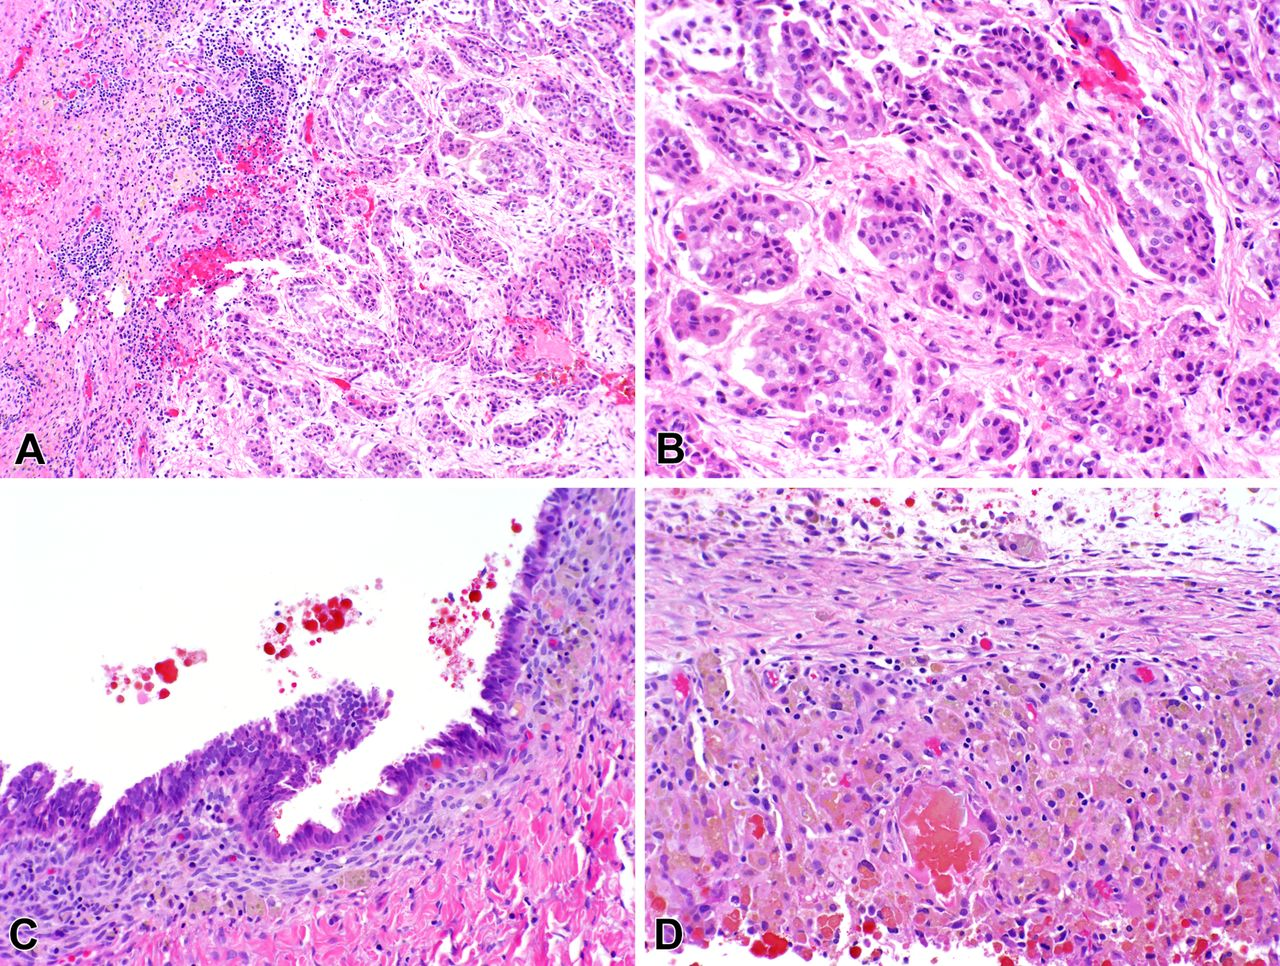 Malignant Peritoneal Mesothelioma In Patients With Endometriosis Journal Of Clinical Pathology